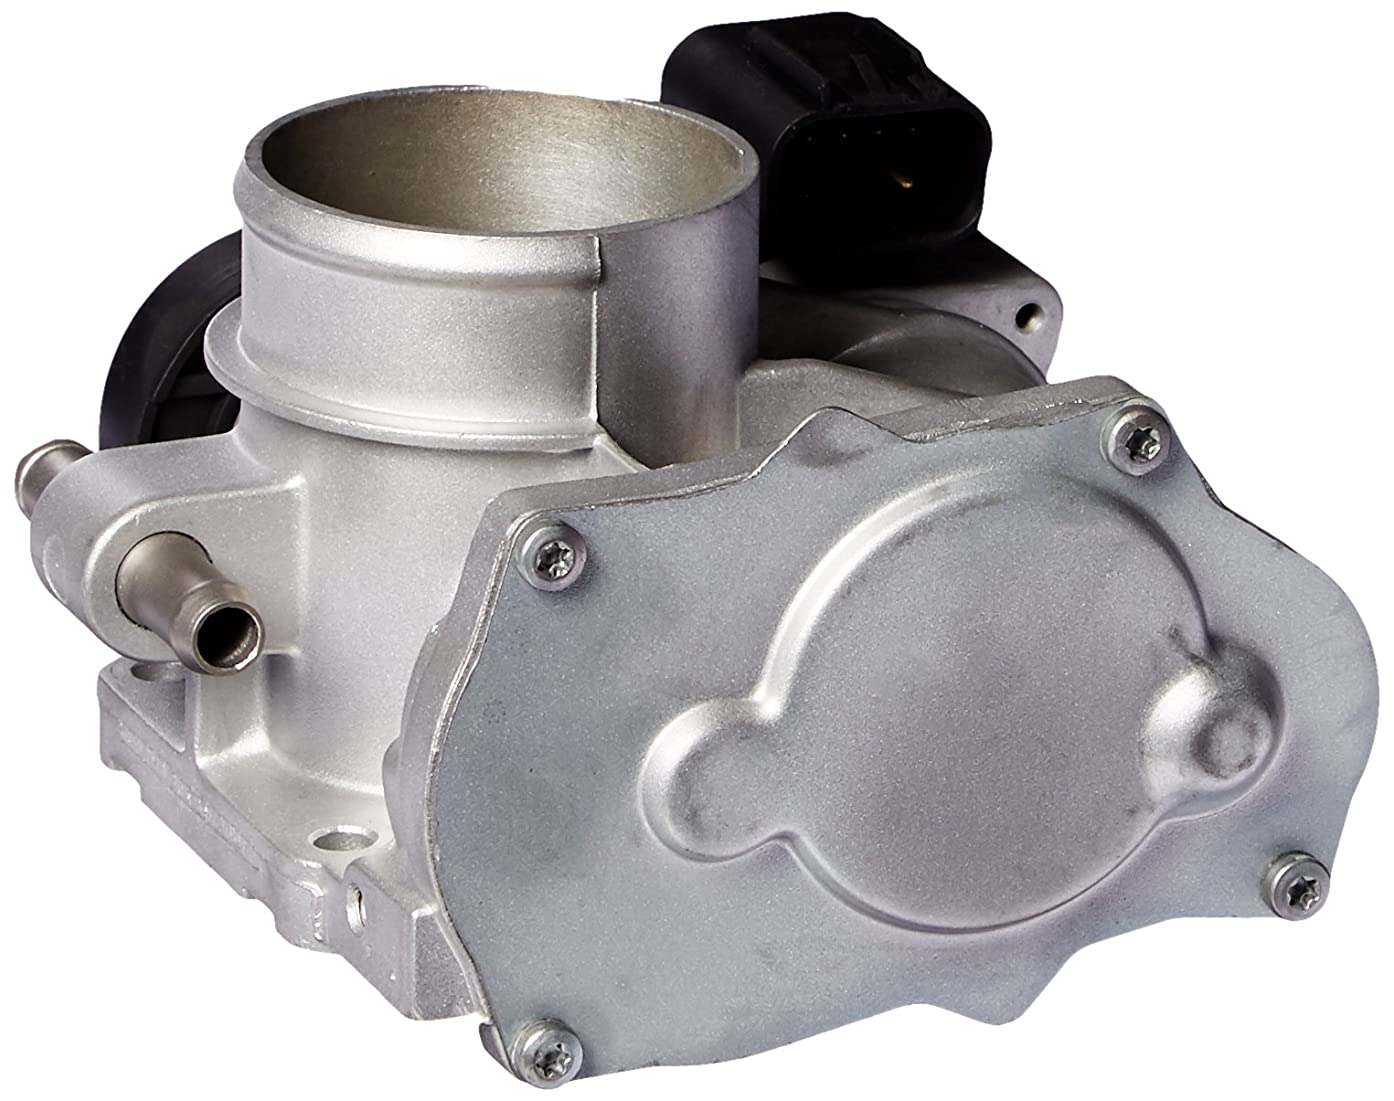 A1 Cardone 67-3026 Remanufactured Throttle Body, 1 Pack